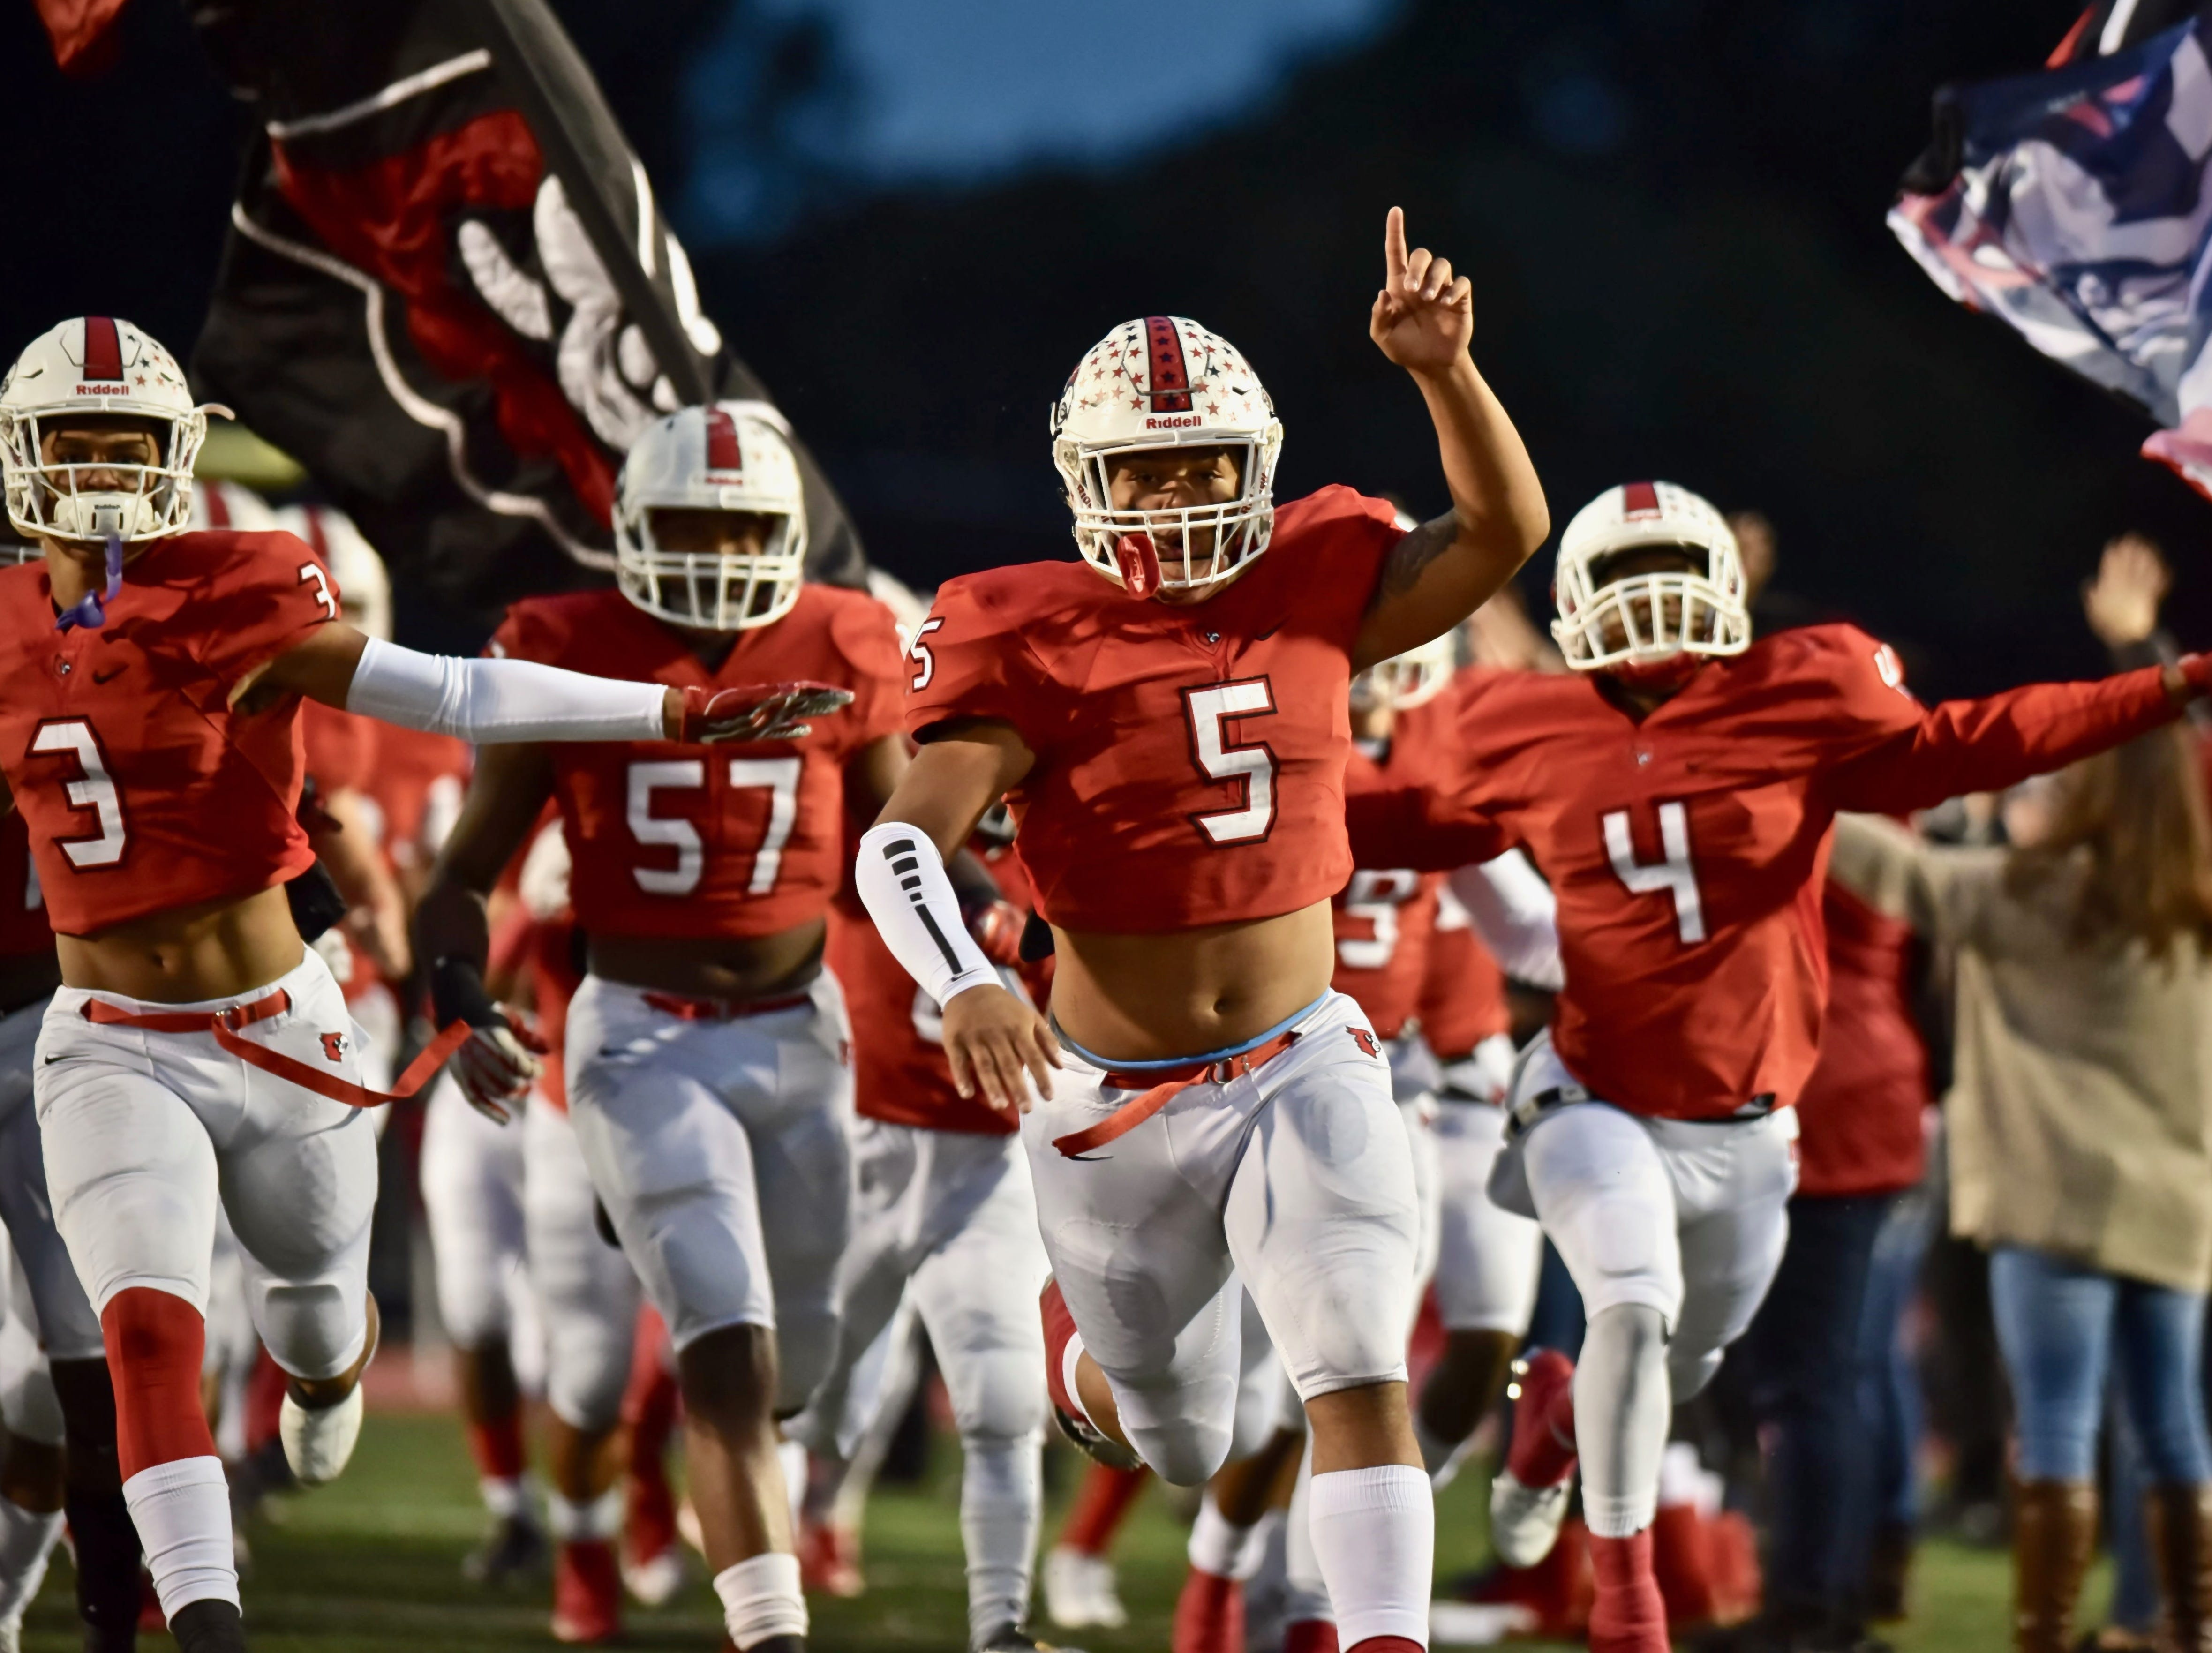 The Colerain Cardinals take the field before their game against Fairfield Friday, Oct. 19, 2018 at Colerain High School